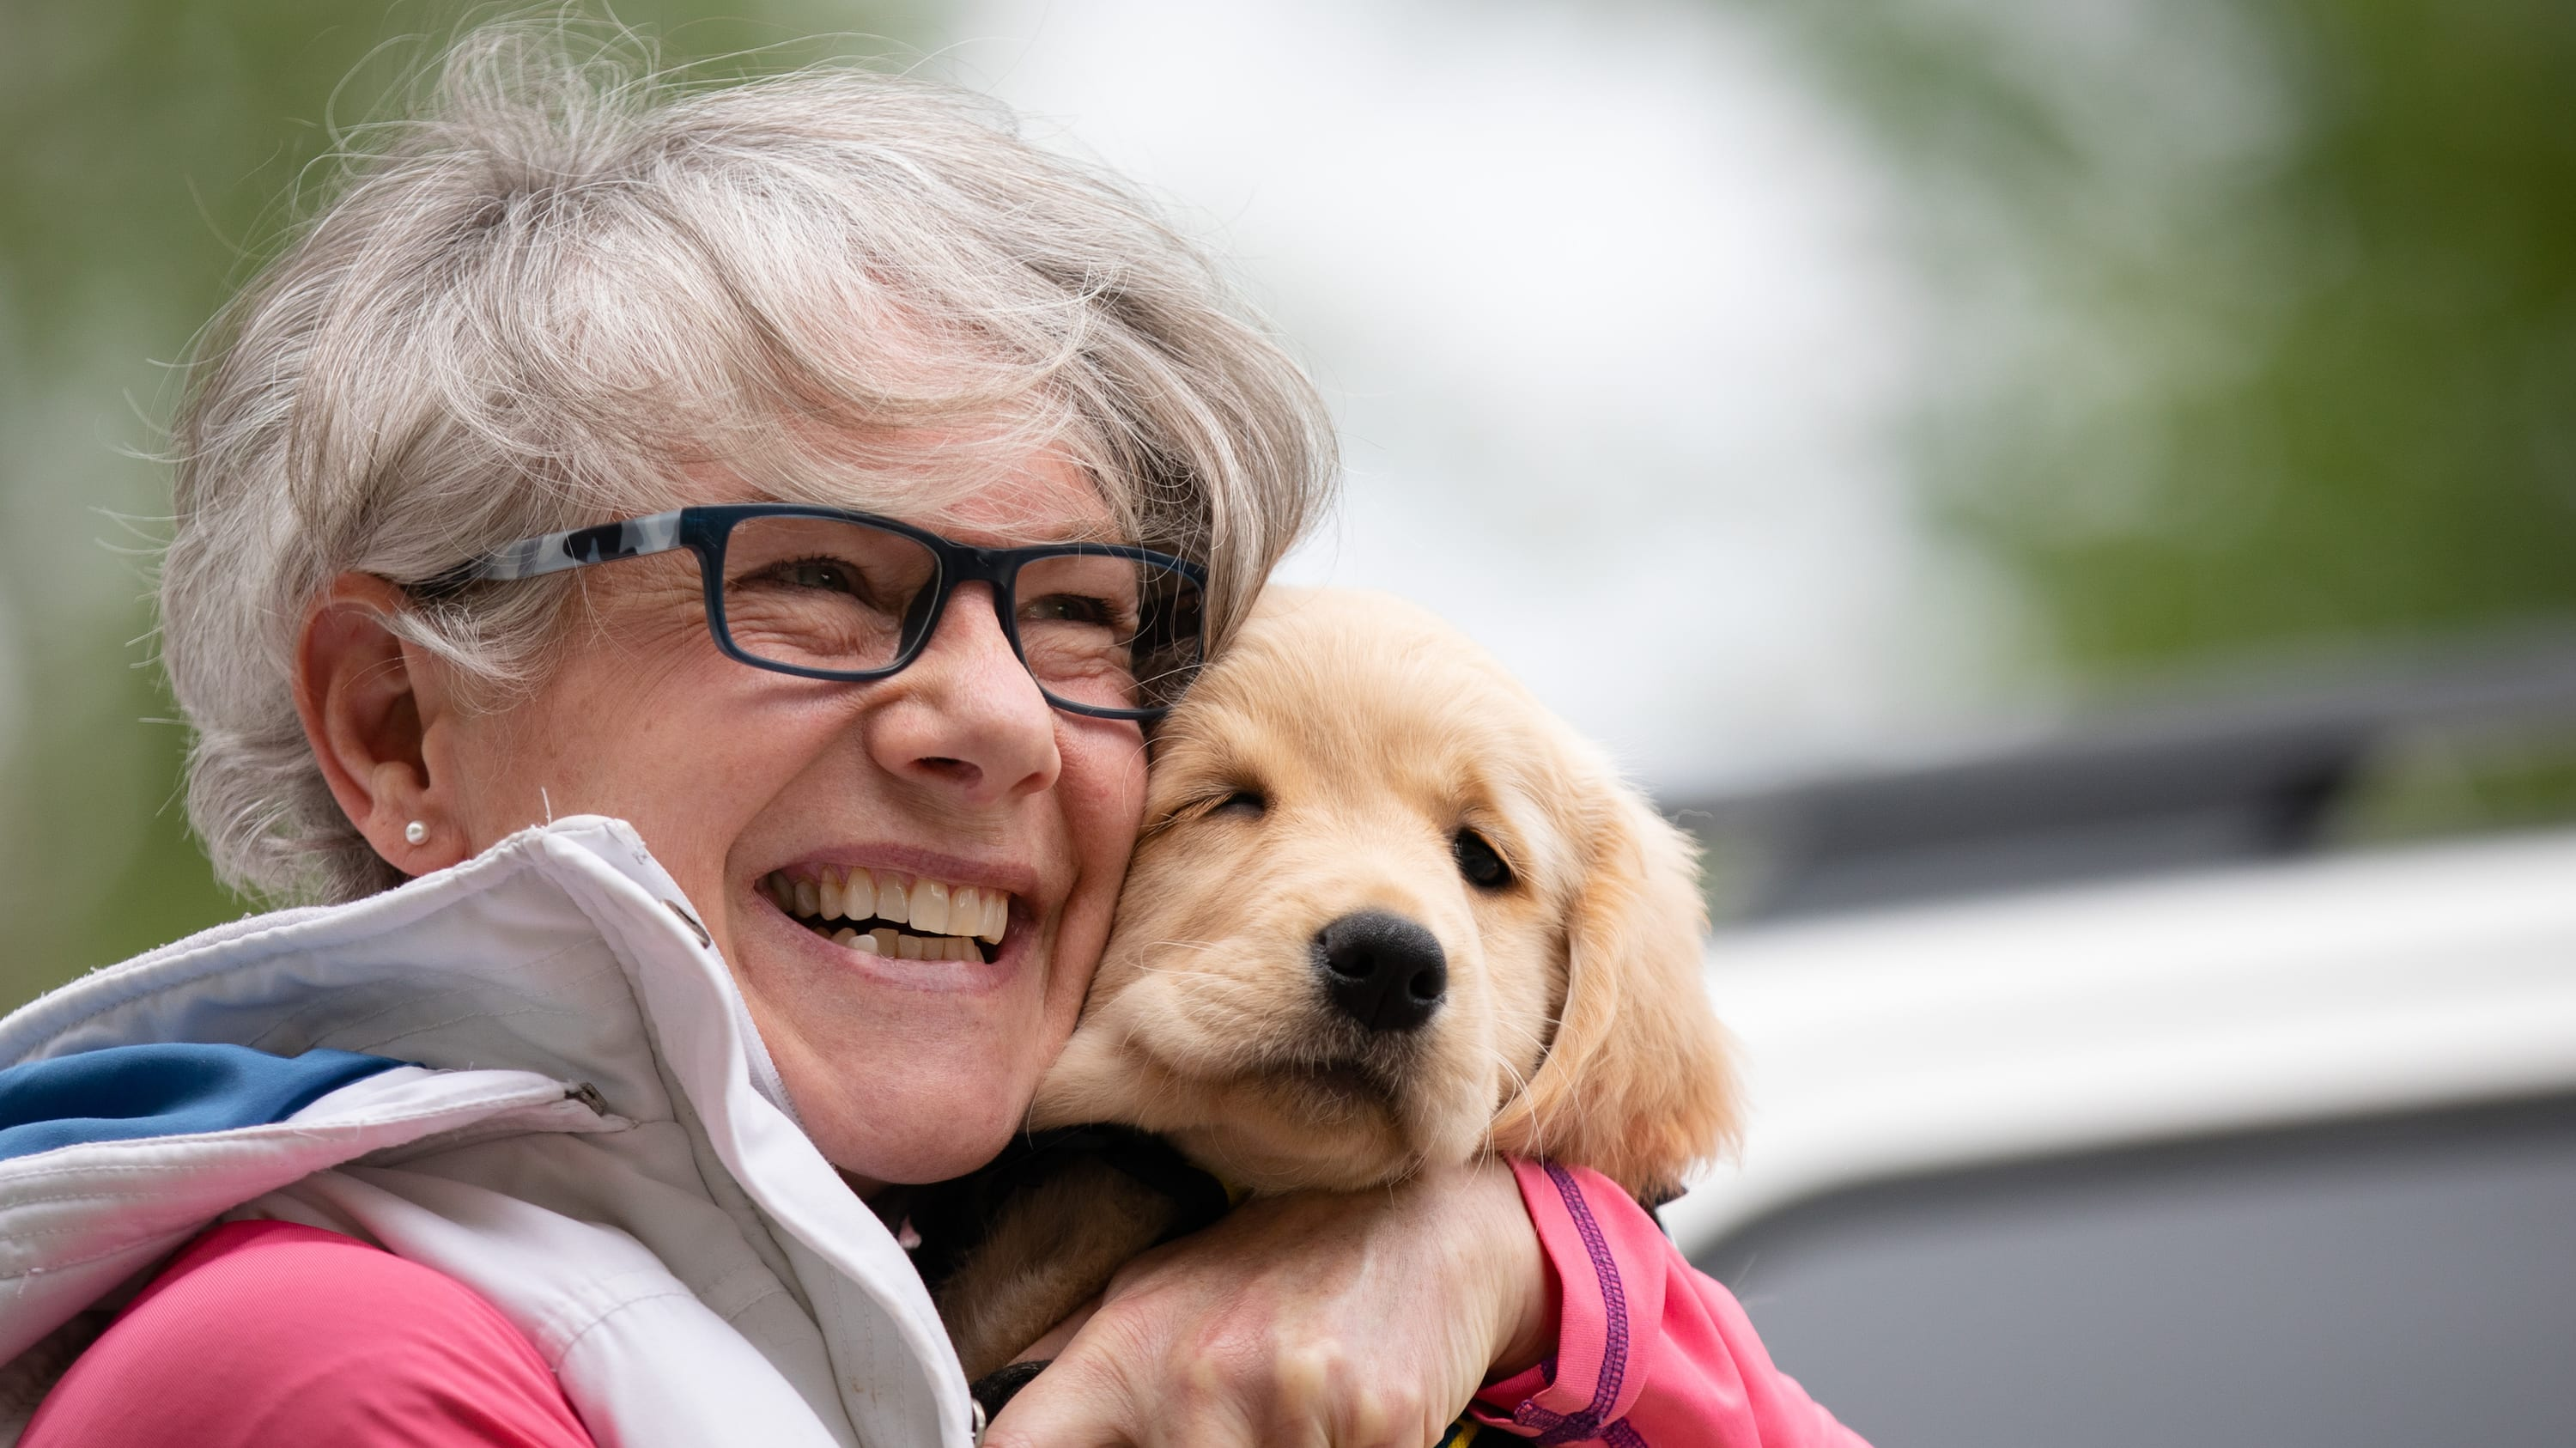 Pandemic isolation sees booming demand for pets — and for businesses that cater to them